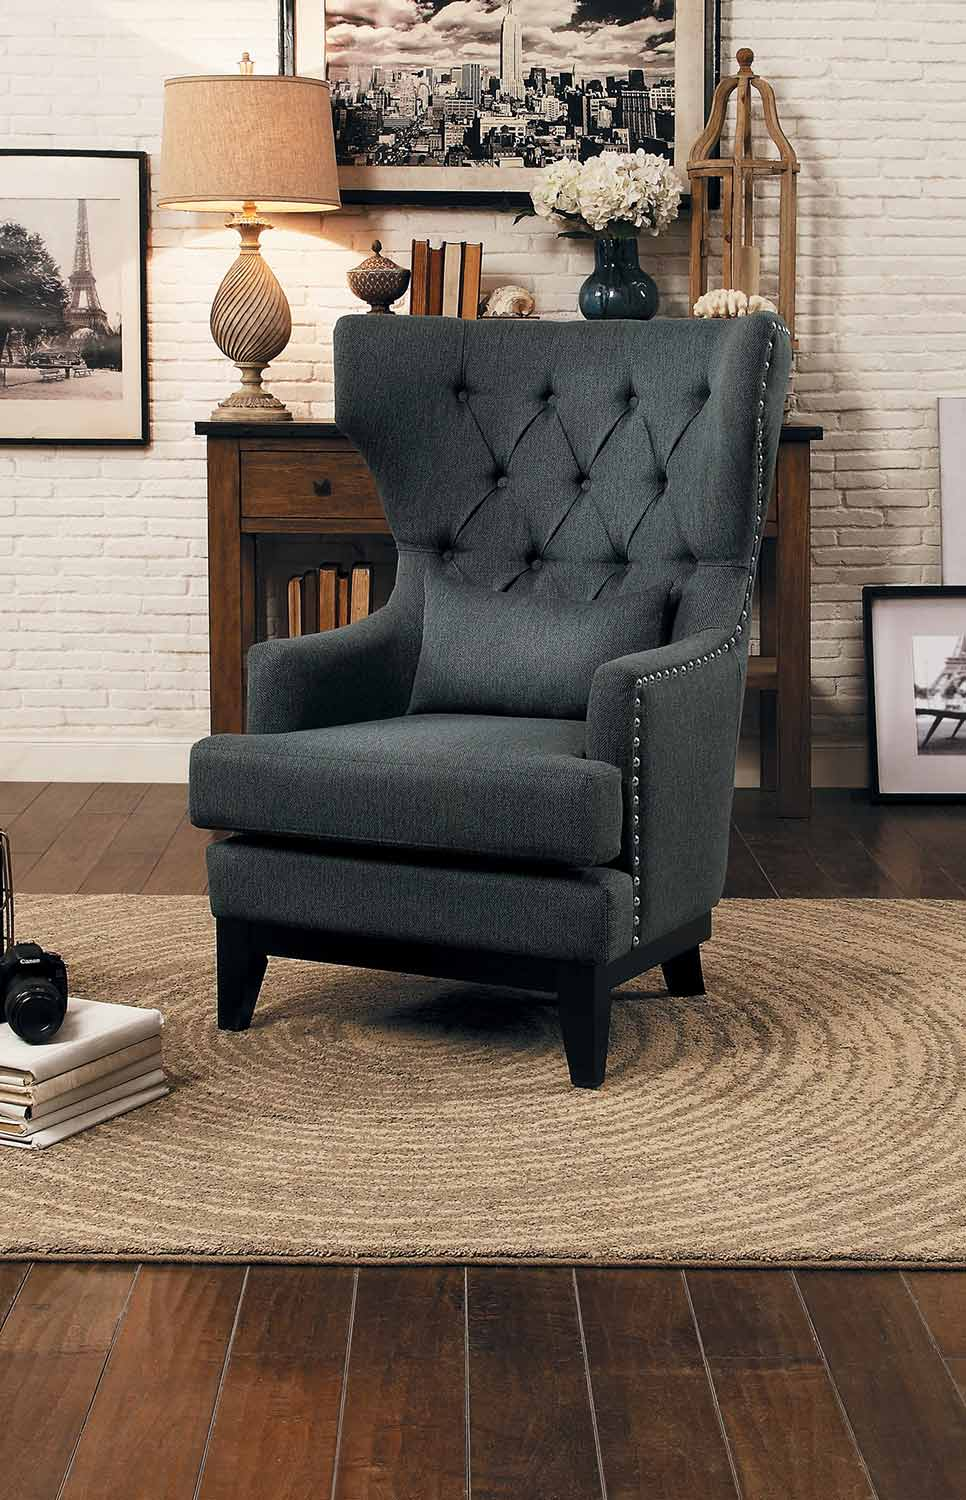 Homelegance Adriano Accent Chair with 1 Kidney Pillow - Gray